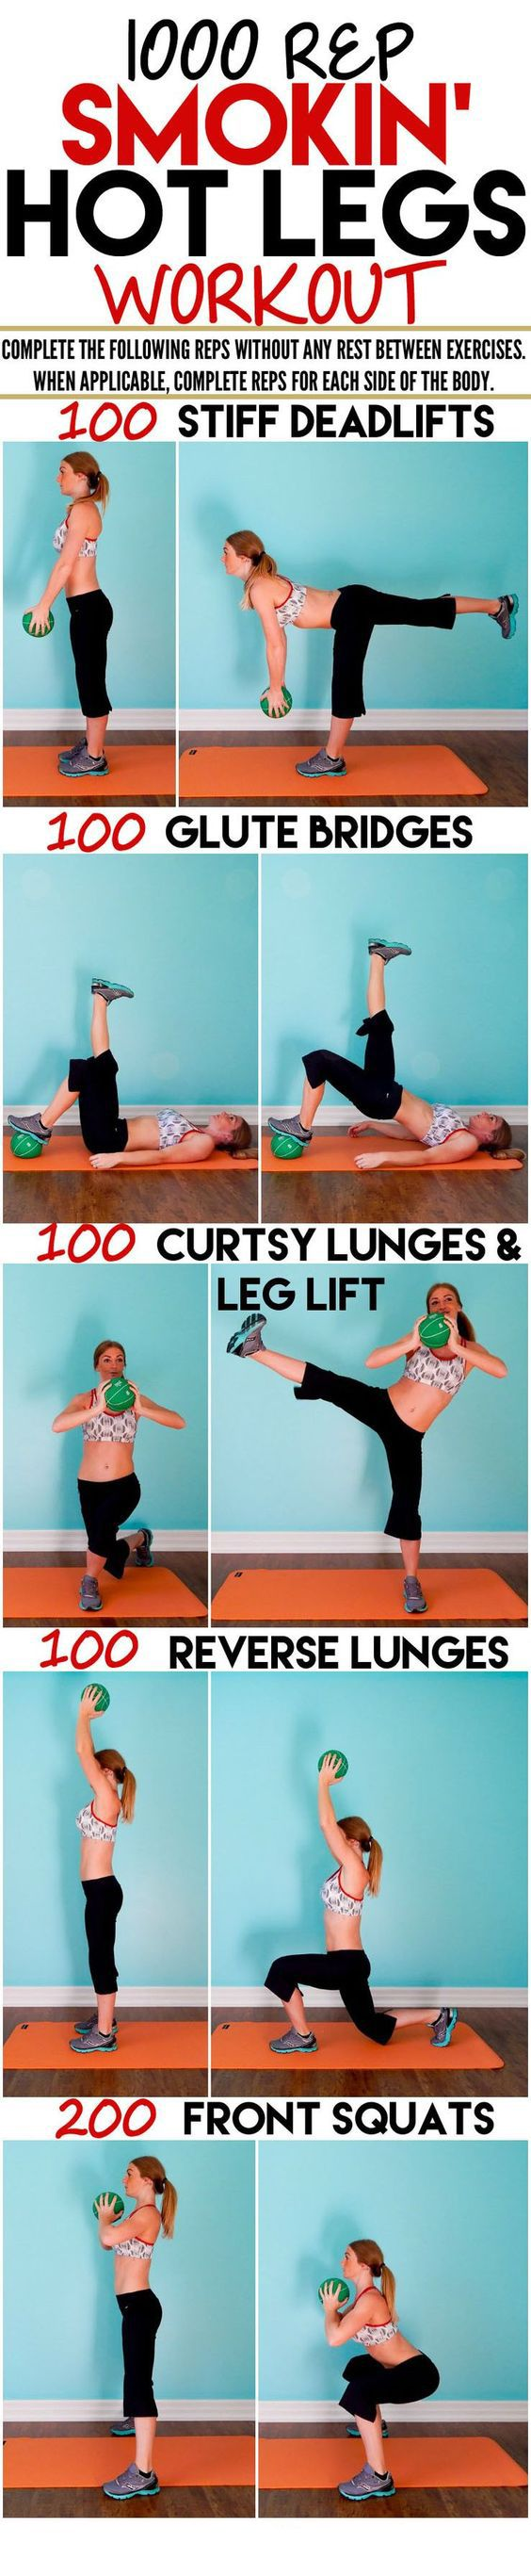 How about those 1000 reps to your Smokin' Hot Legs #weightloss #loseweight #weightlossworkout #legsworkout #fatburning #exercise #workout #Fitness #Health https://www.youtube.com/watch?v=Q96gA6-kRZk